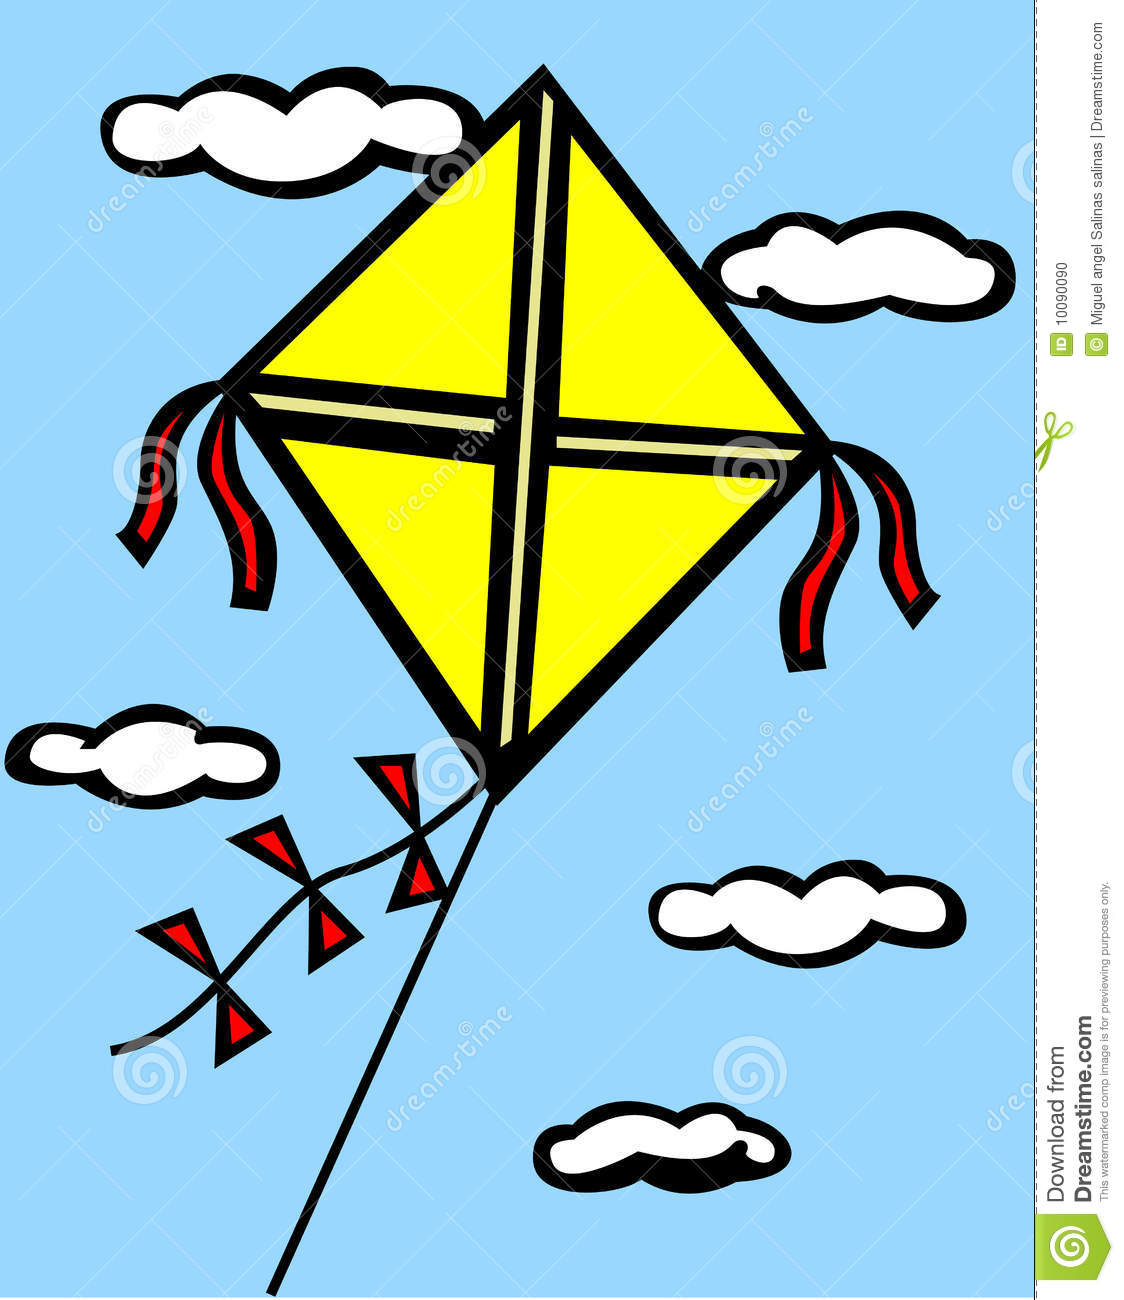 Up to the sky clipart graphic stock Kite flying in the sky vector   Clipart Panda - Free Clipart ... graphic stock